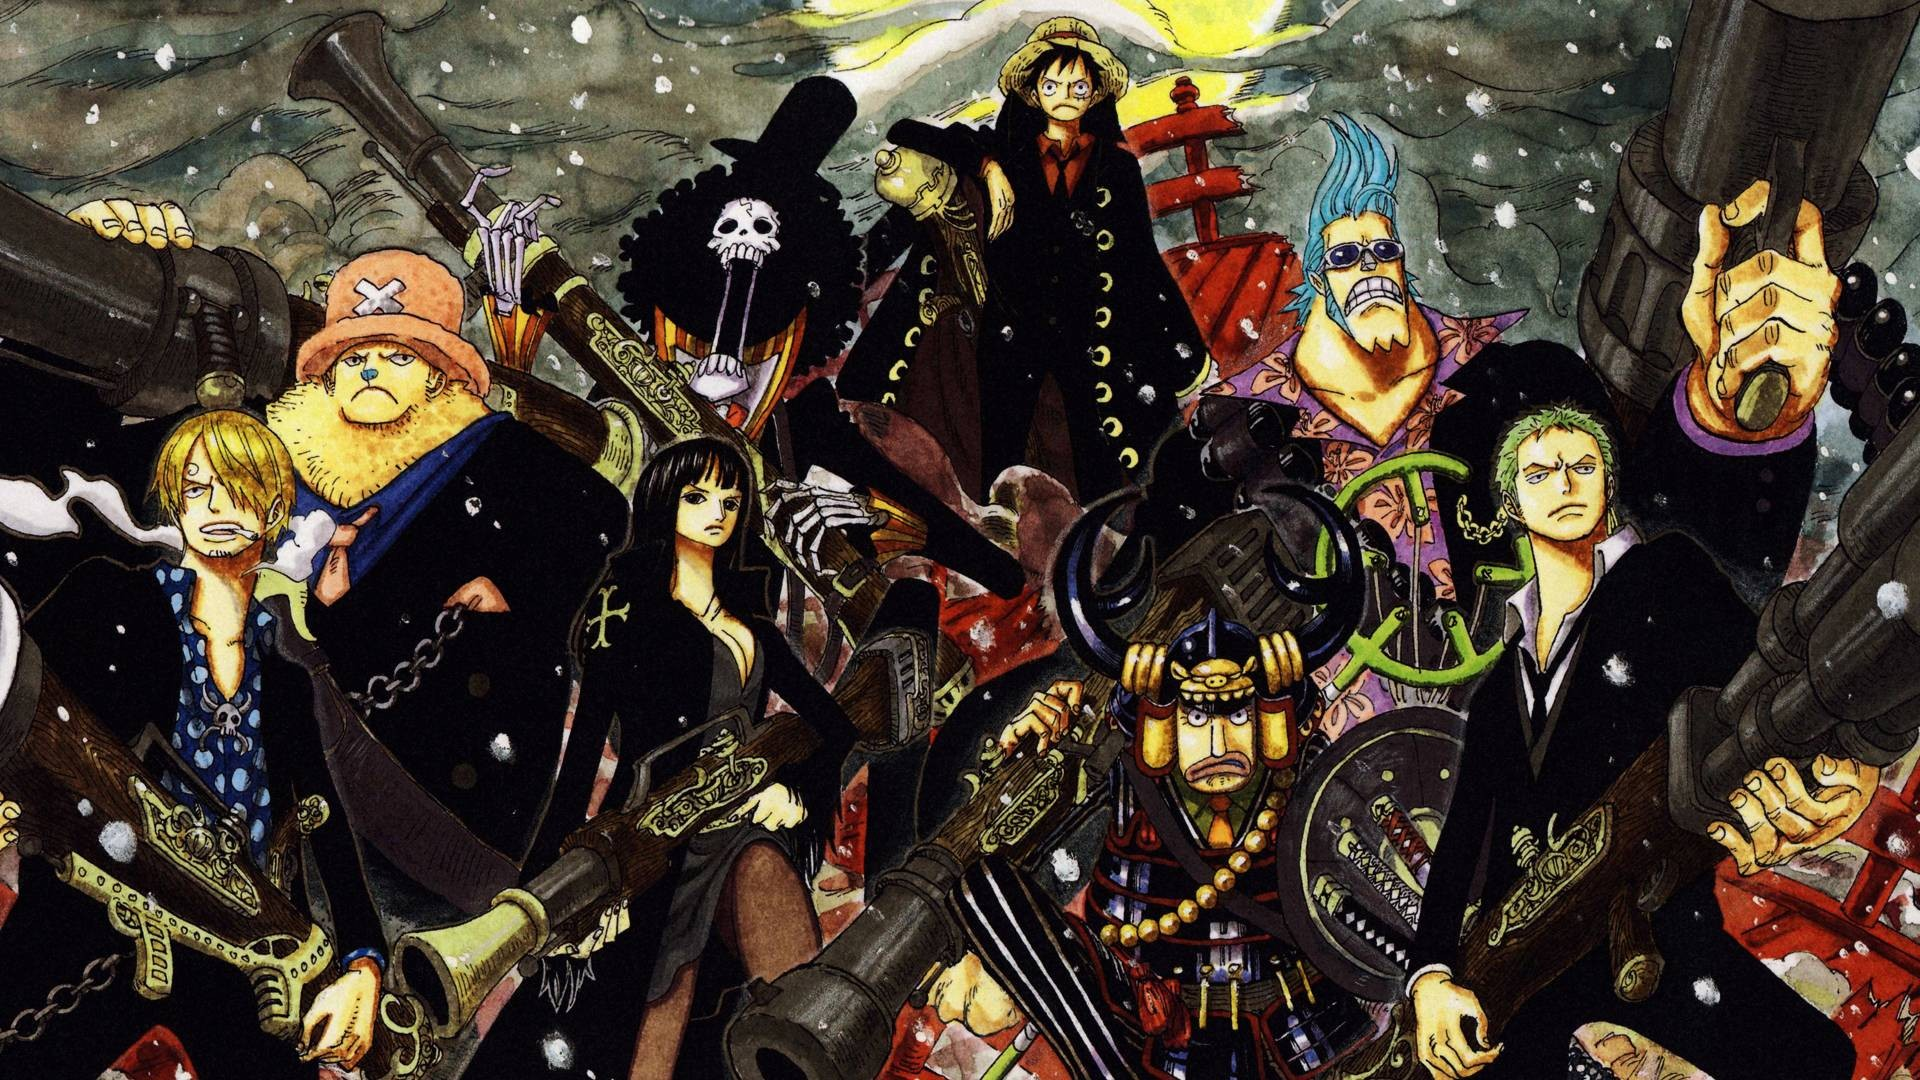 81 One Piece Wallpapers Download Free Beautiful Full Hd